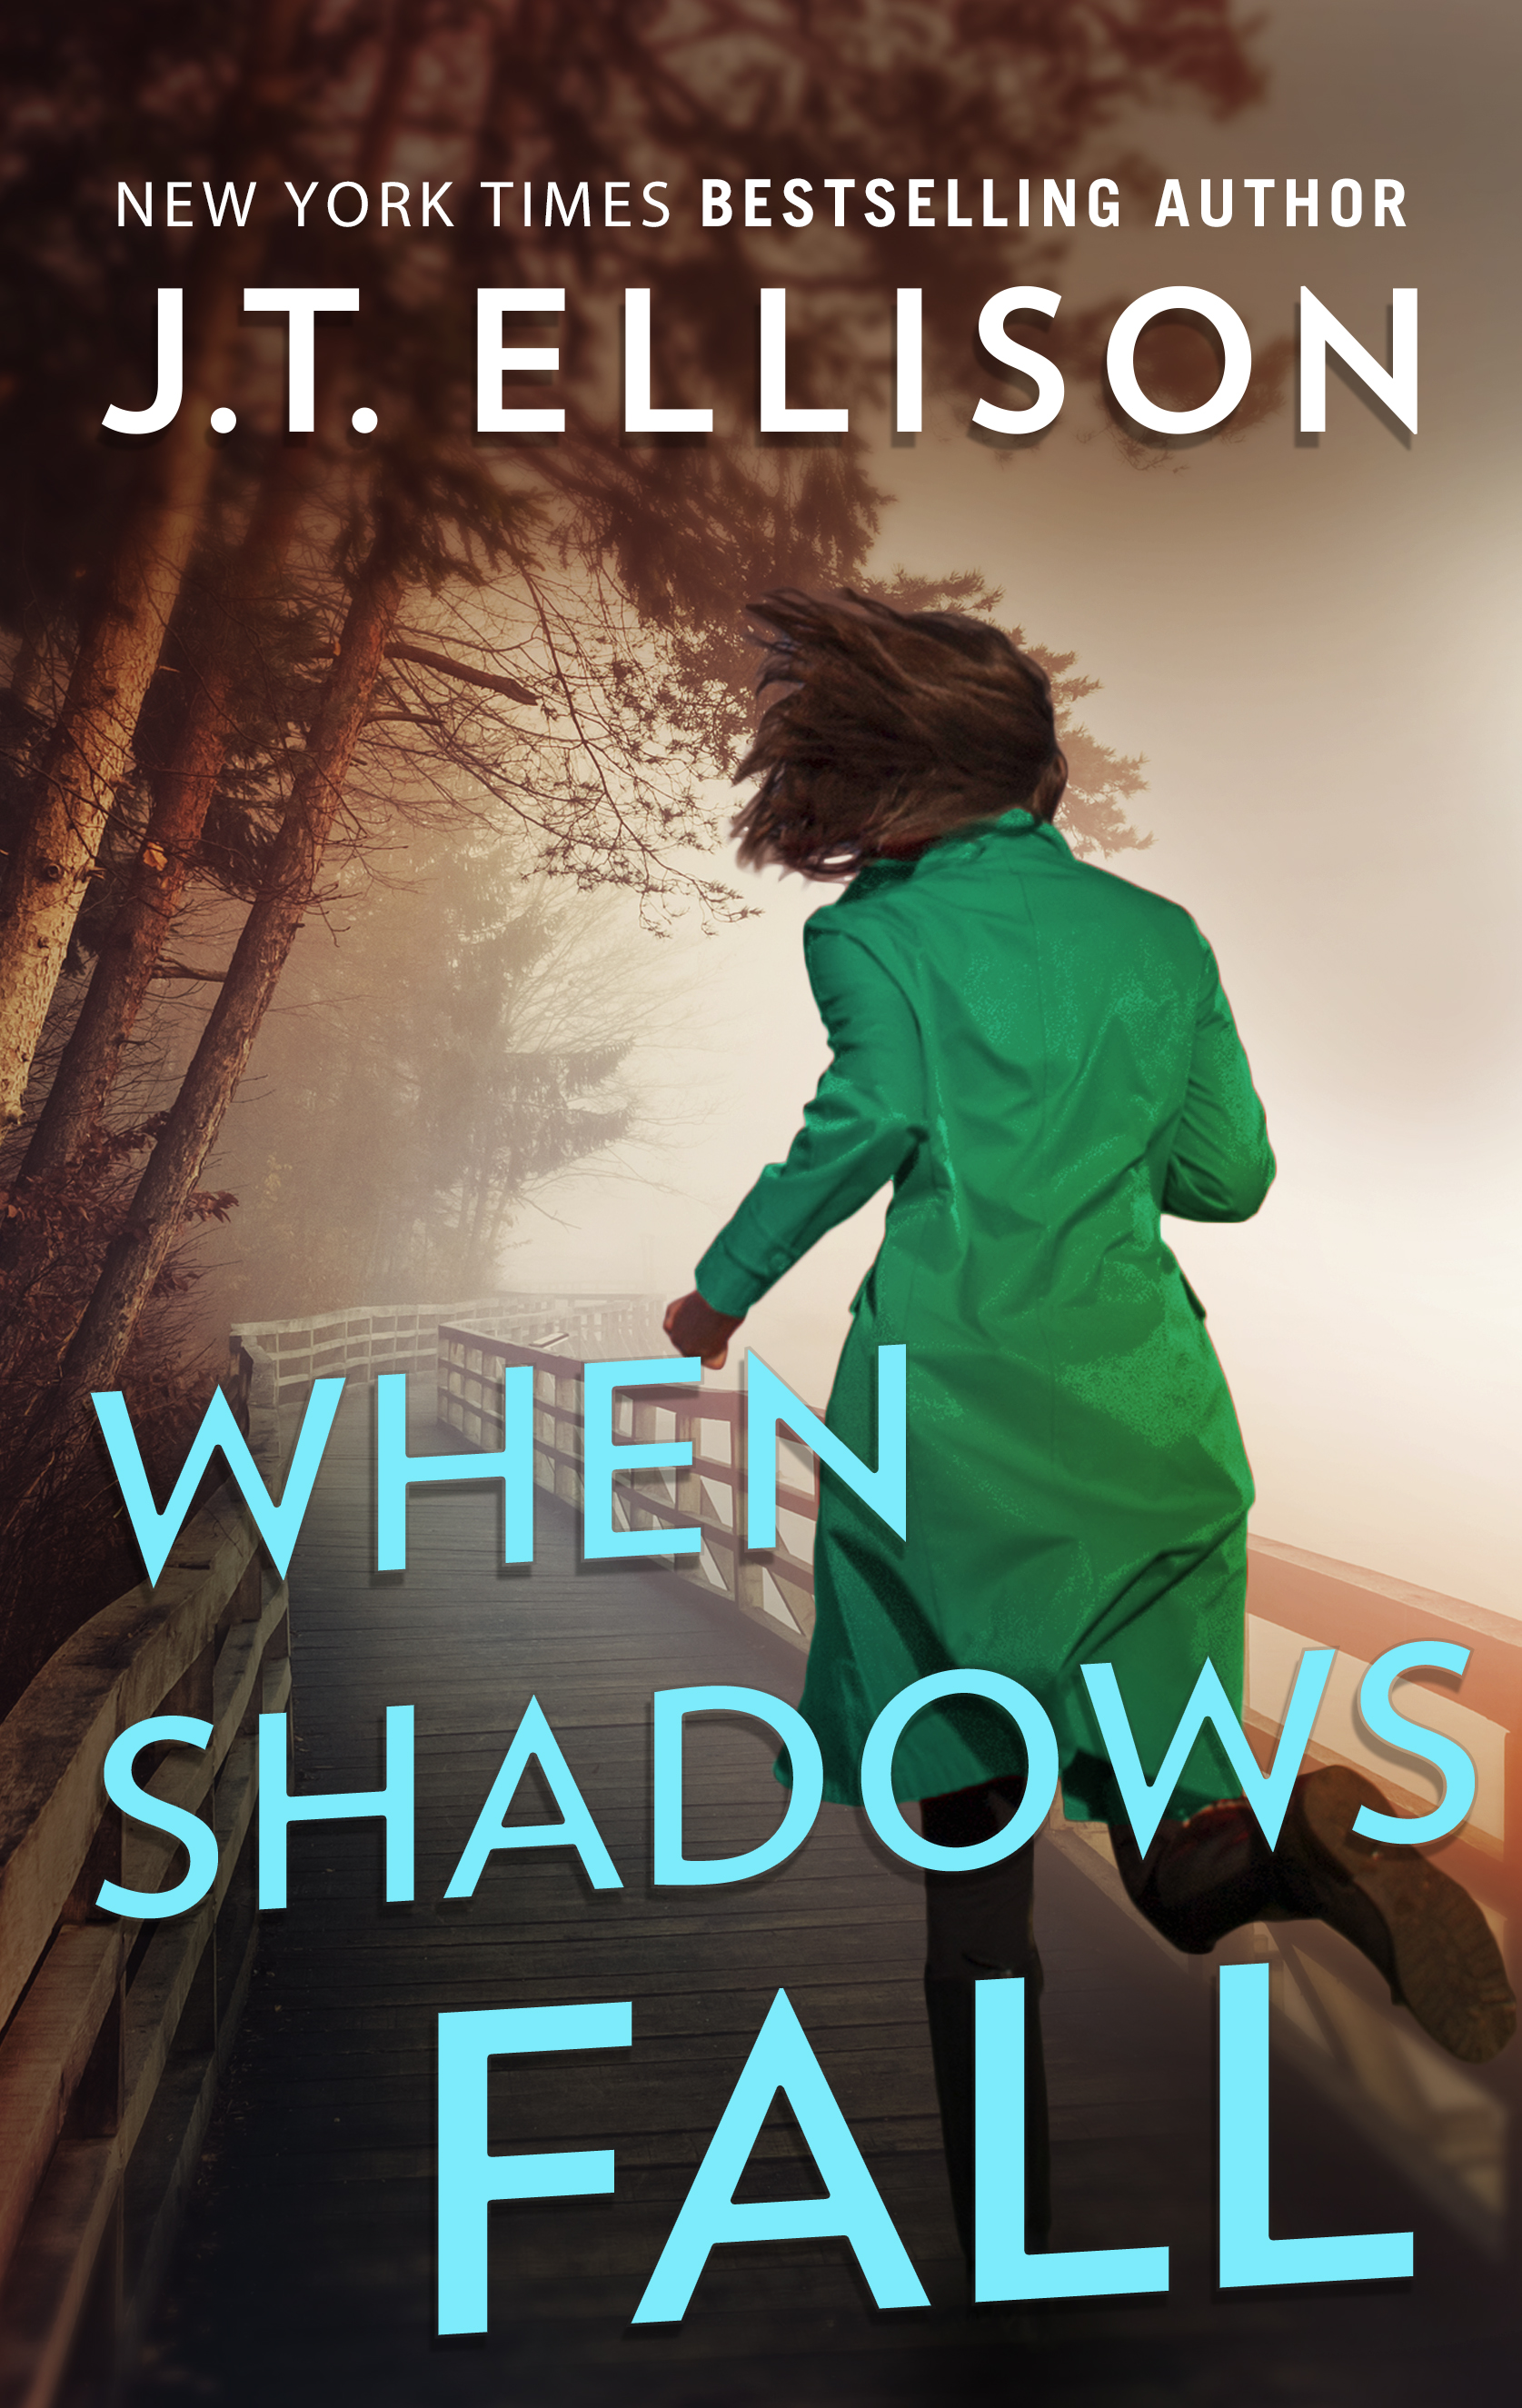 #3 - When Shadows Fall